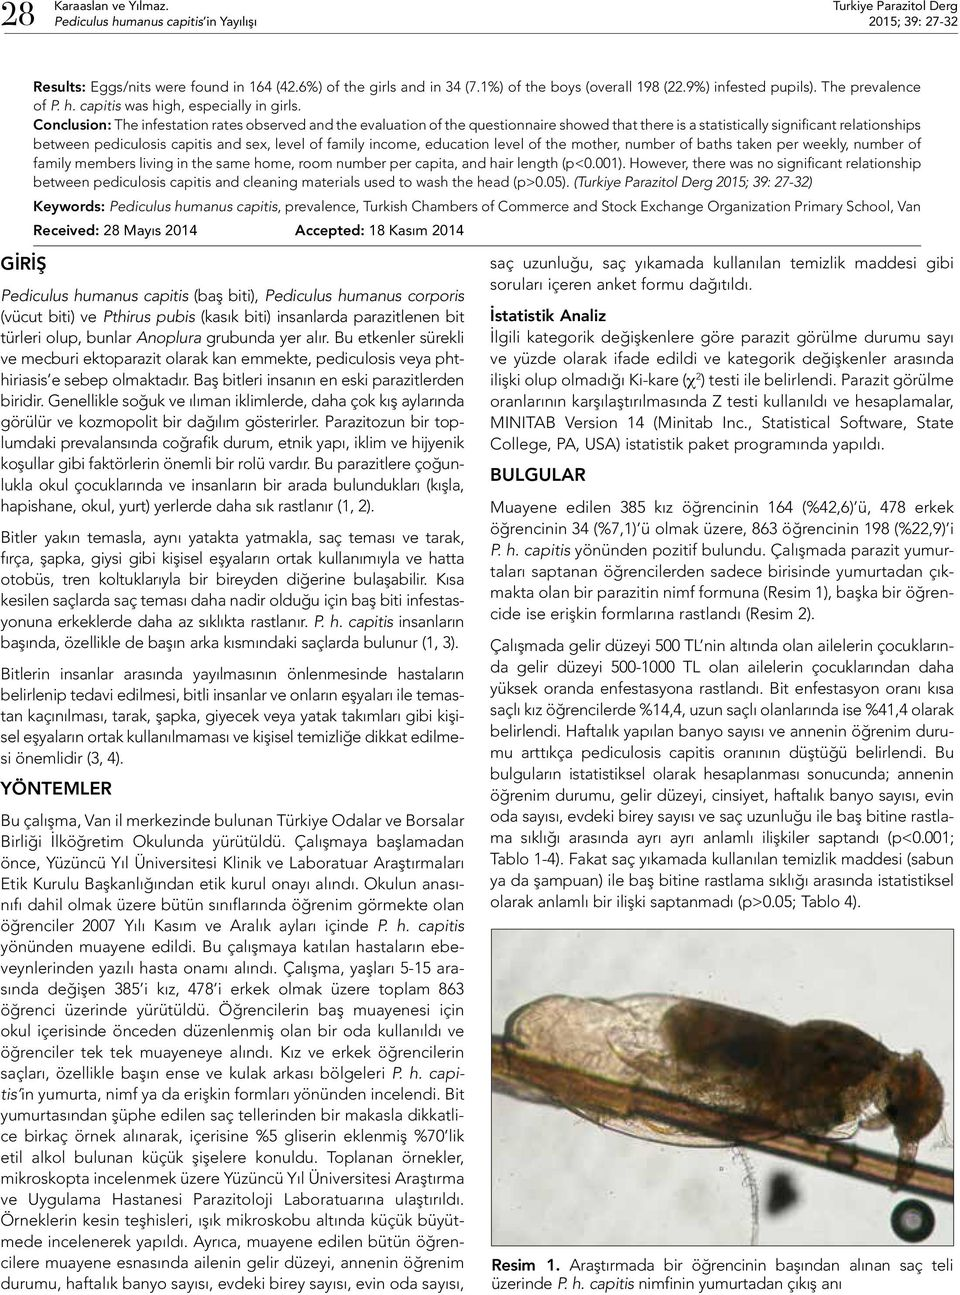 Conclusion: The infestation rates observed and the evaluation of the questionnaire showed that there is a statistically significant relationships between pediculosis capitis and sex, level of family